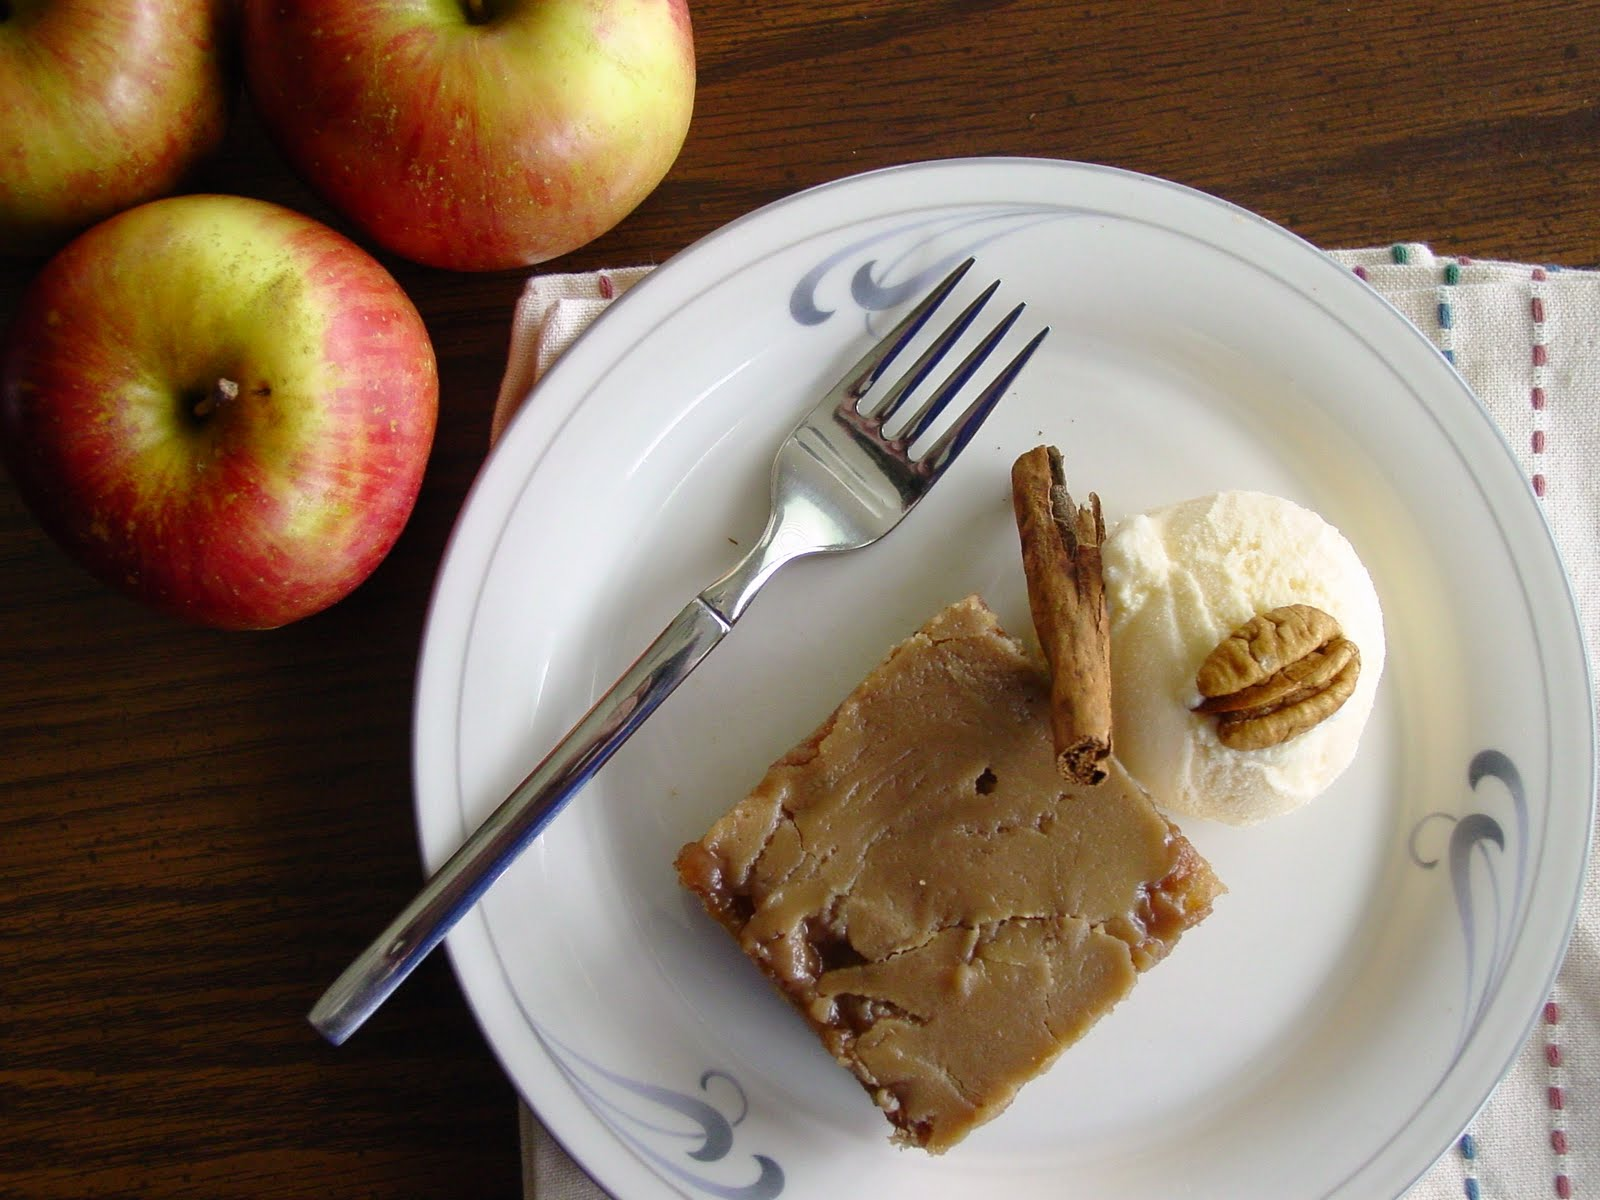 Fresh+Apple+Cake+with+Brown+Sugar+Glaze+062.JPG